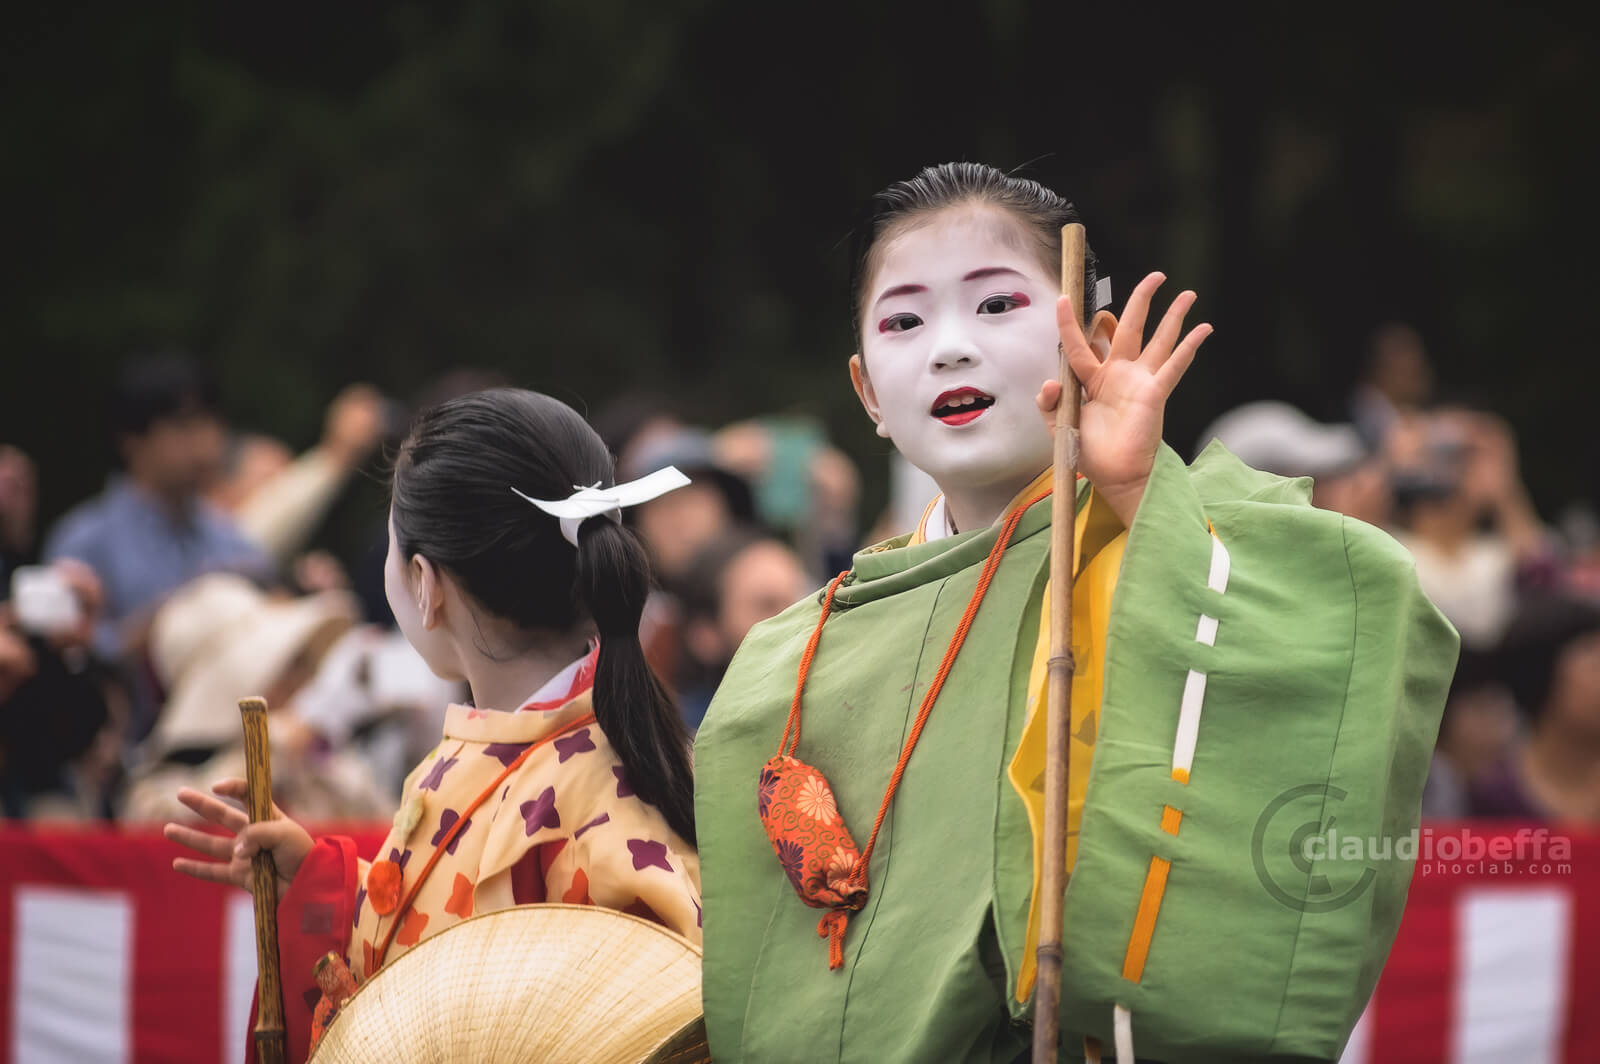 Children of Tokiwa Gozen of the Minamoto clan. Jidai Matsuri, Festival, Kyoto, Japan, History, Tradition, Travel.